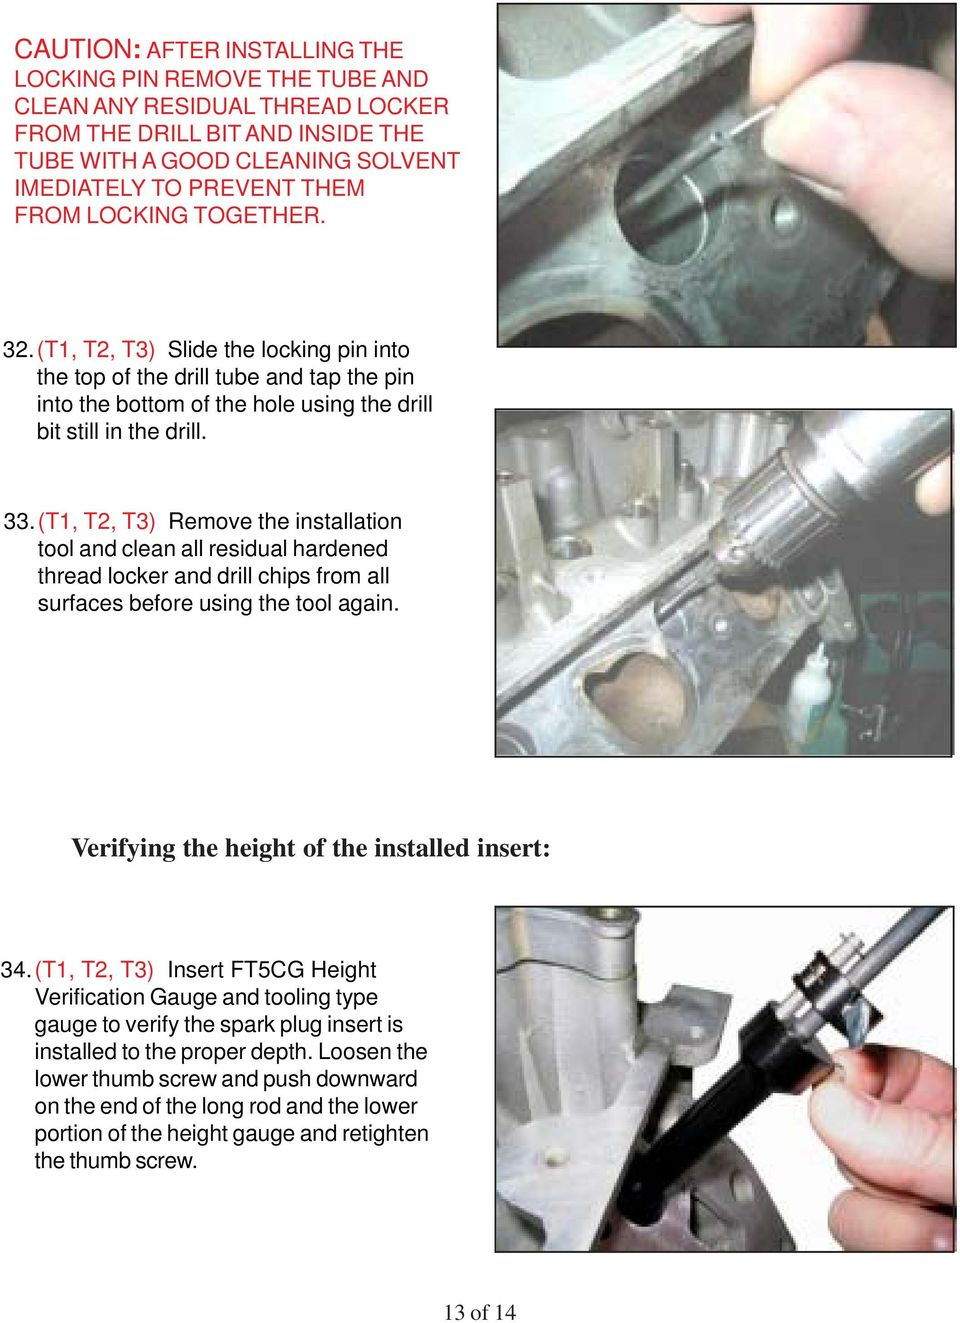 (T1, T2, T3) Remove the installation tool and clean all residual hardened thread locker and drill chips from all surfaces before using the tool again. Verifying the height of the installed insert: 34.